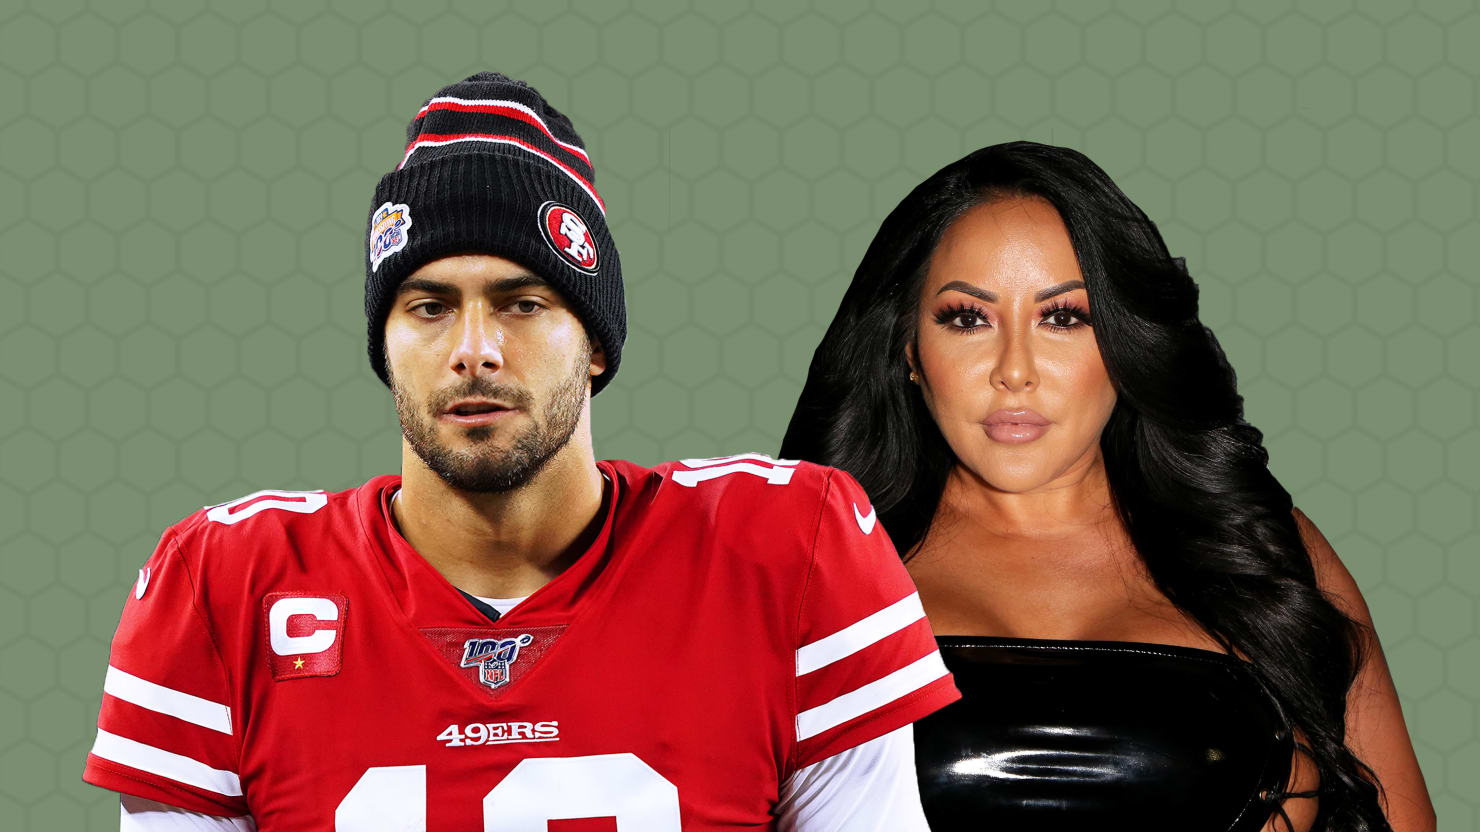 The Cruel Porn Star-Shaming of San Francisco 49ers' Super Bowl QB Jimmy Garoppolo